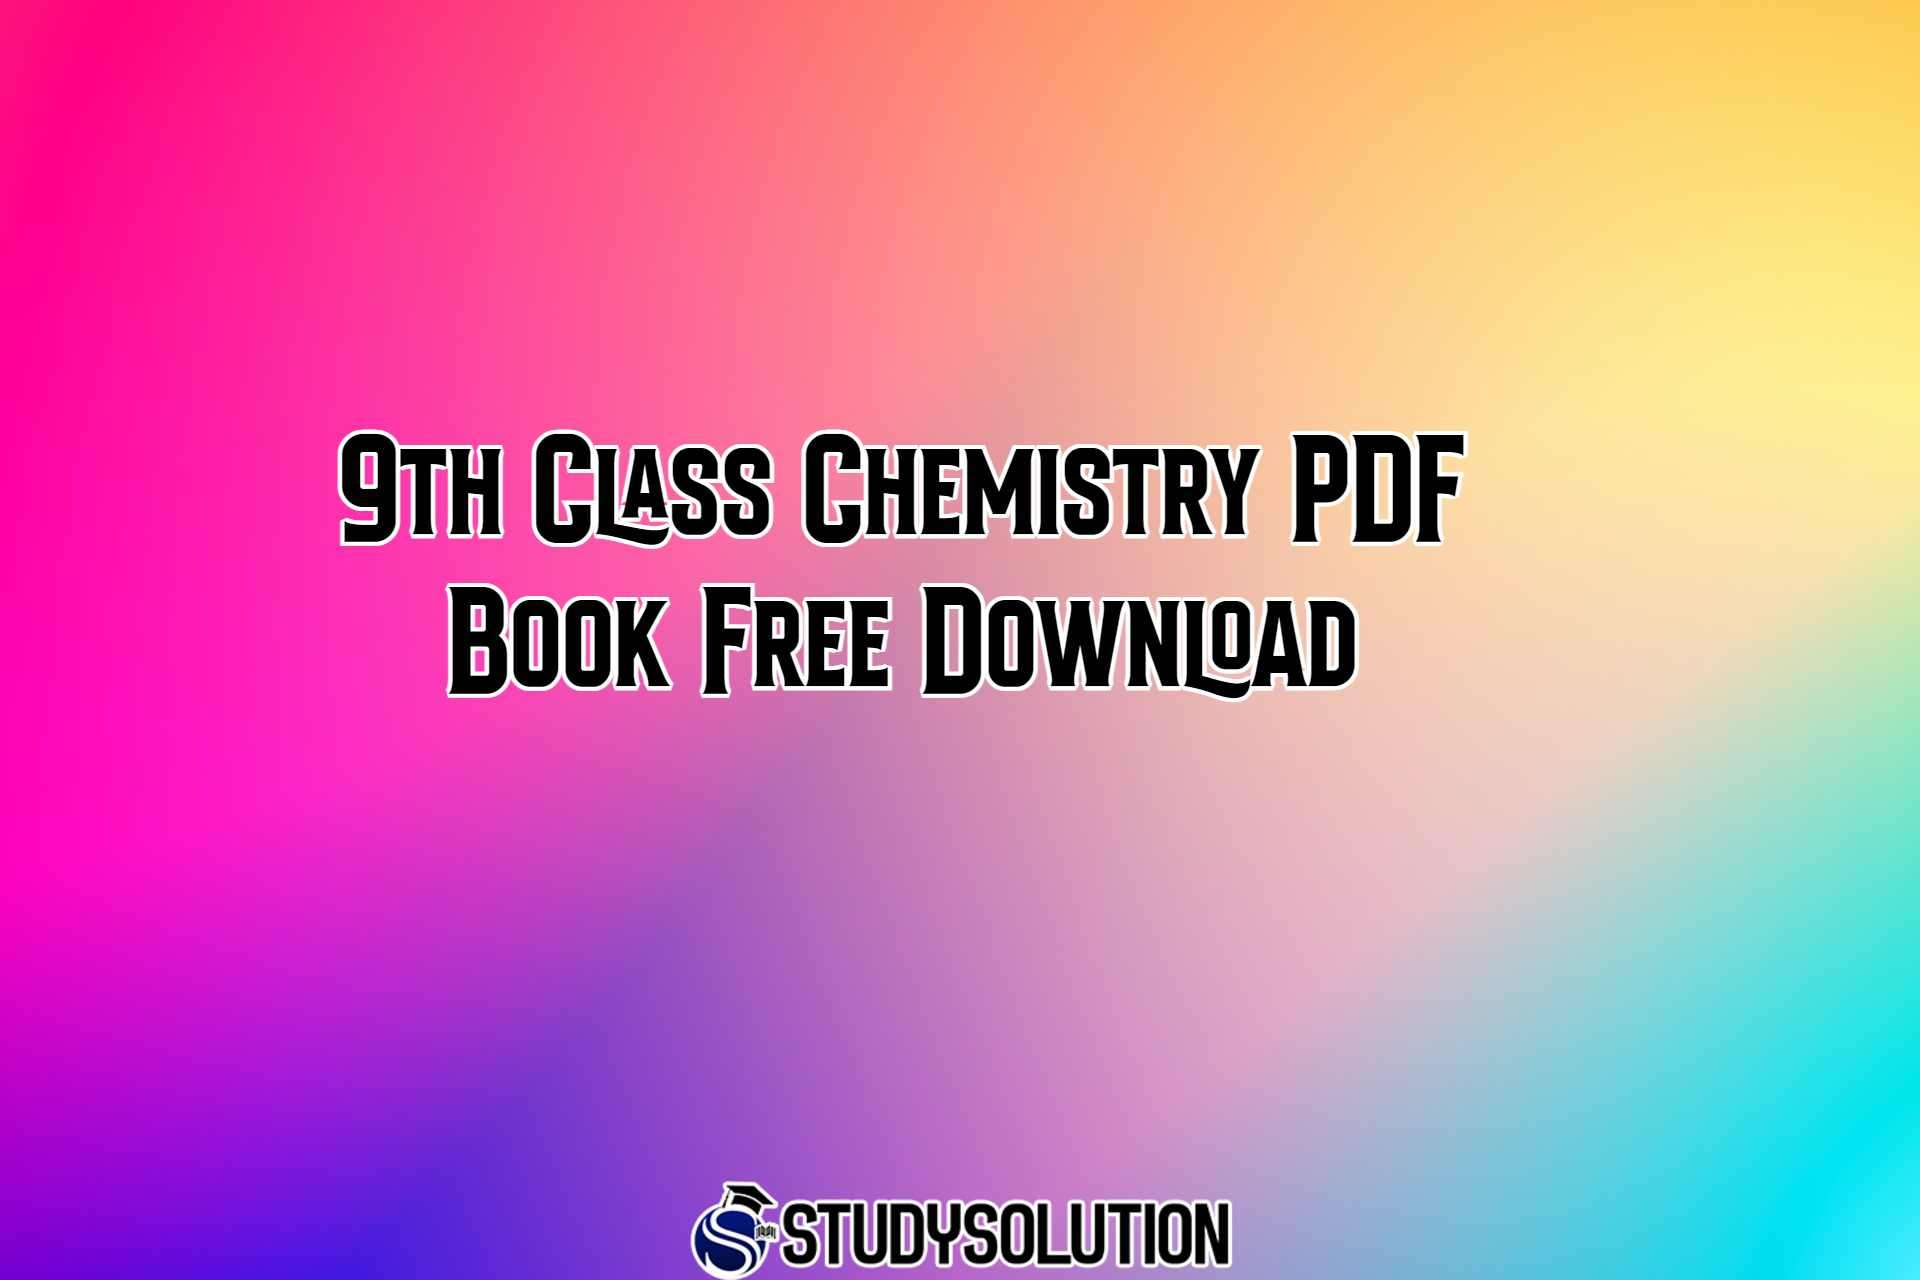 9th Class Chemistry PDF Book Free Download